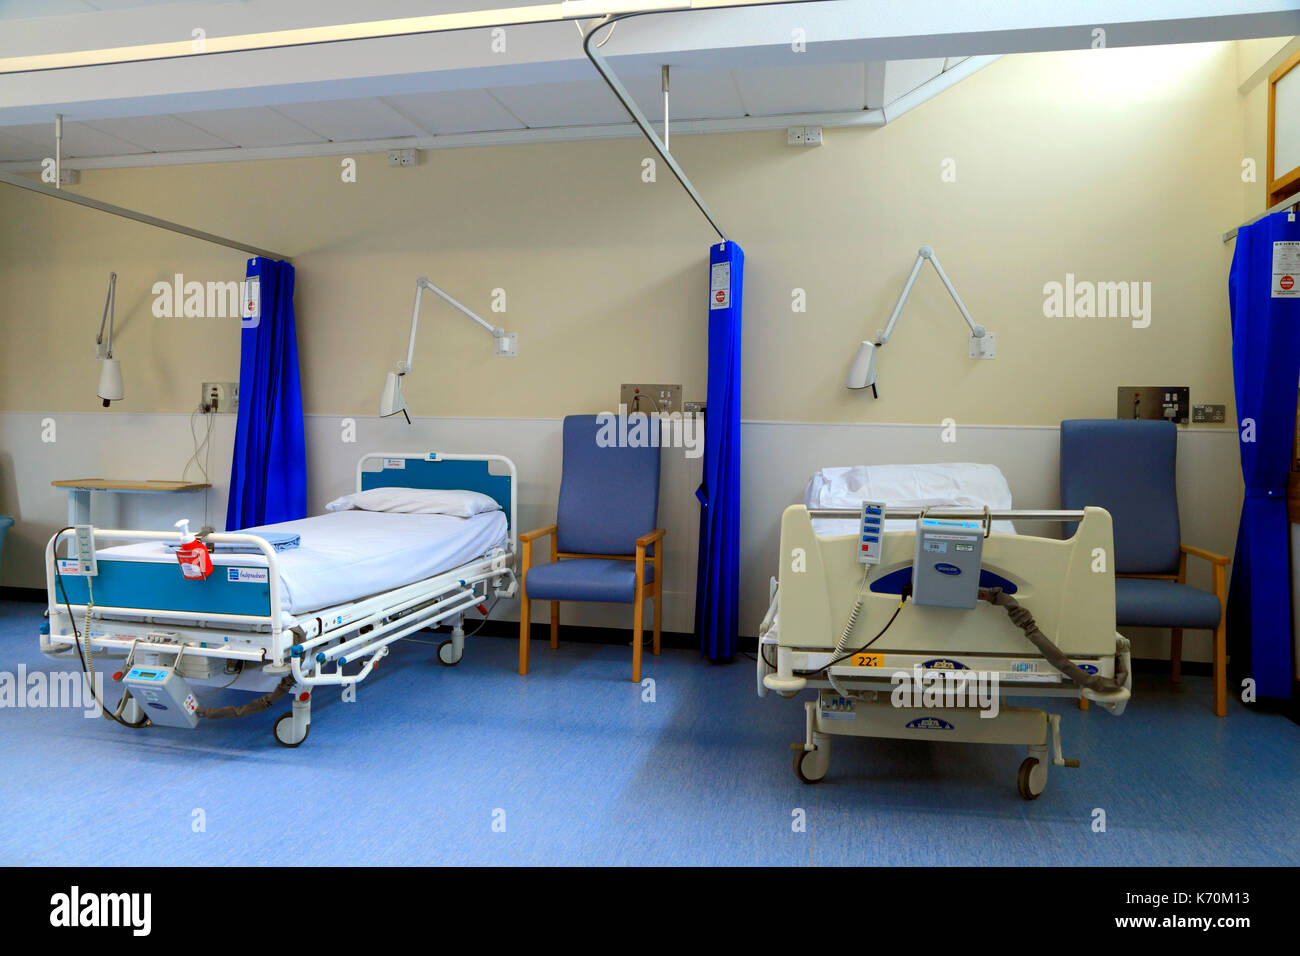 NHS, N.H.S. Hospital Ward, National Health Service, Queen Elizabeth Hospital, Kings Lynn, Norfolk, England, UK - Stock Image